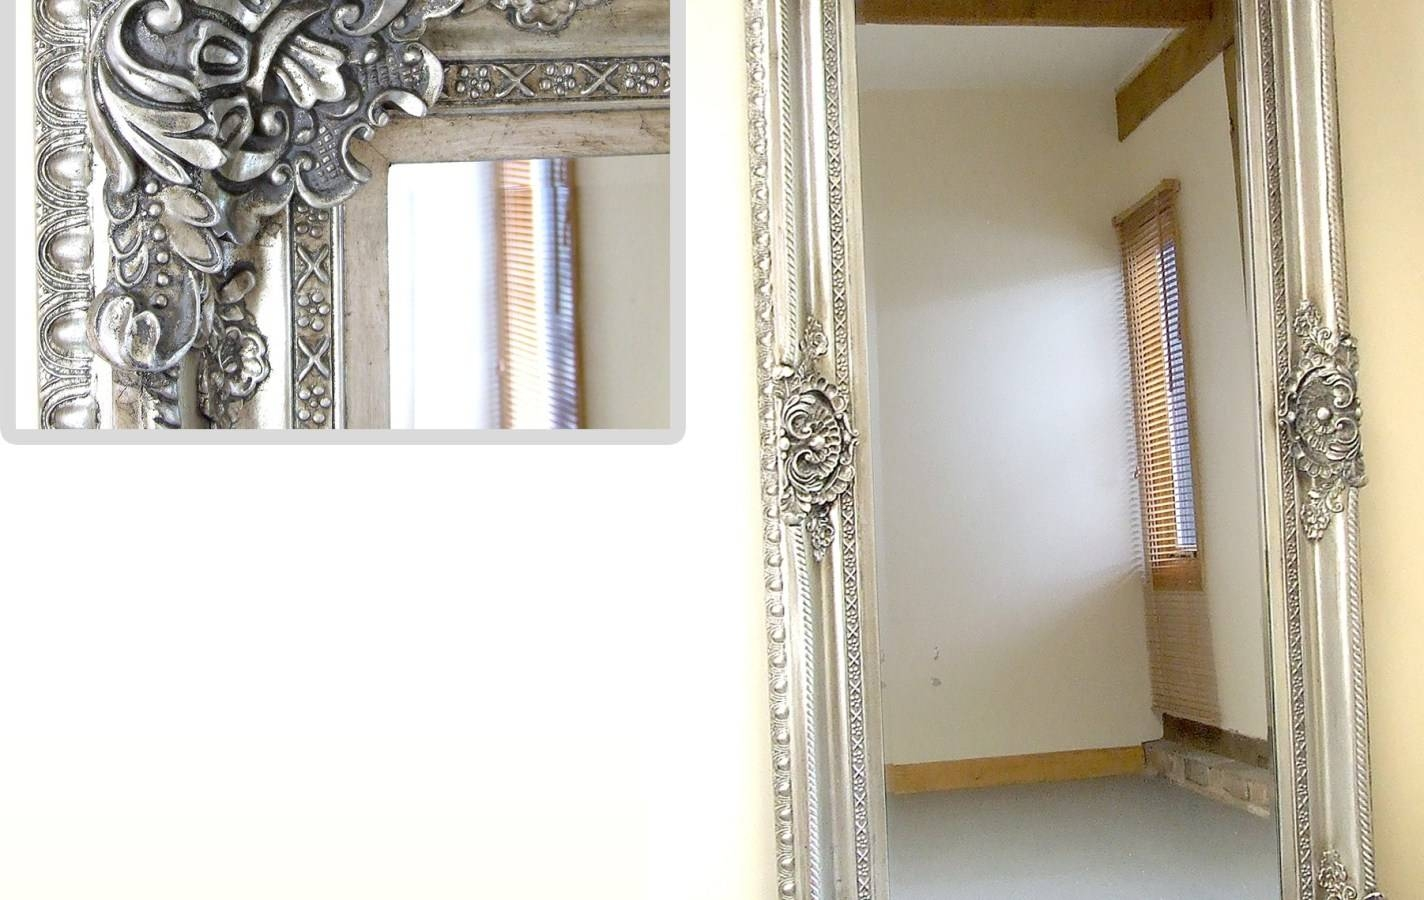 Mirror : Amazing Full Length Ornate Mirror Must Find A Fabulous for Full Length Ornate Mirrors (Image 8 of 15)